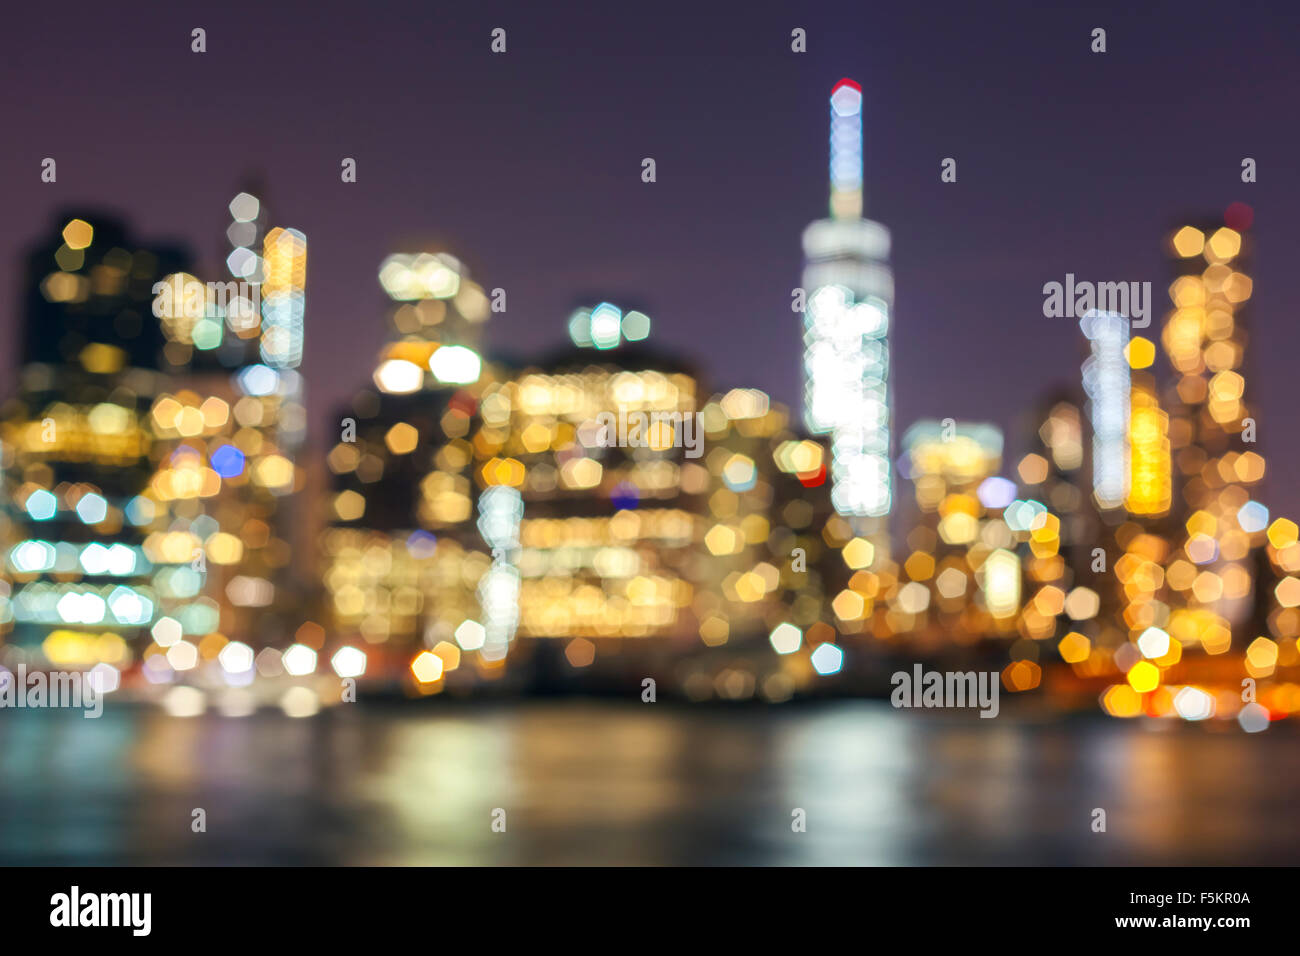 Blurred Manhattan waterfront at night, New York City, USA. - Stock Image